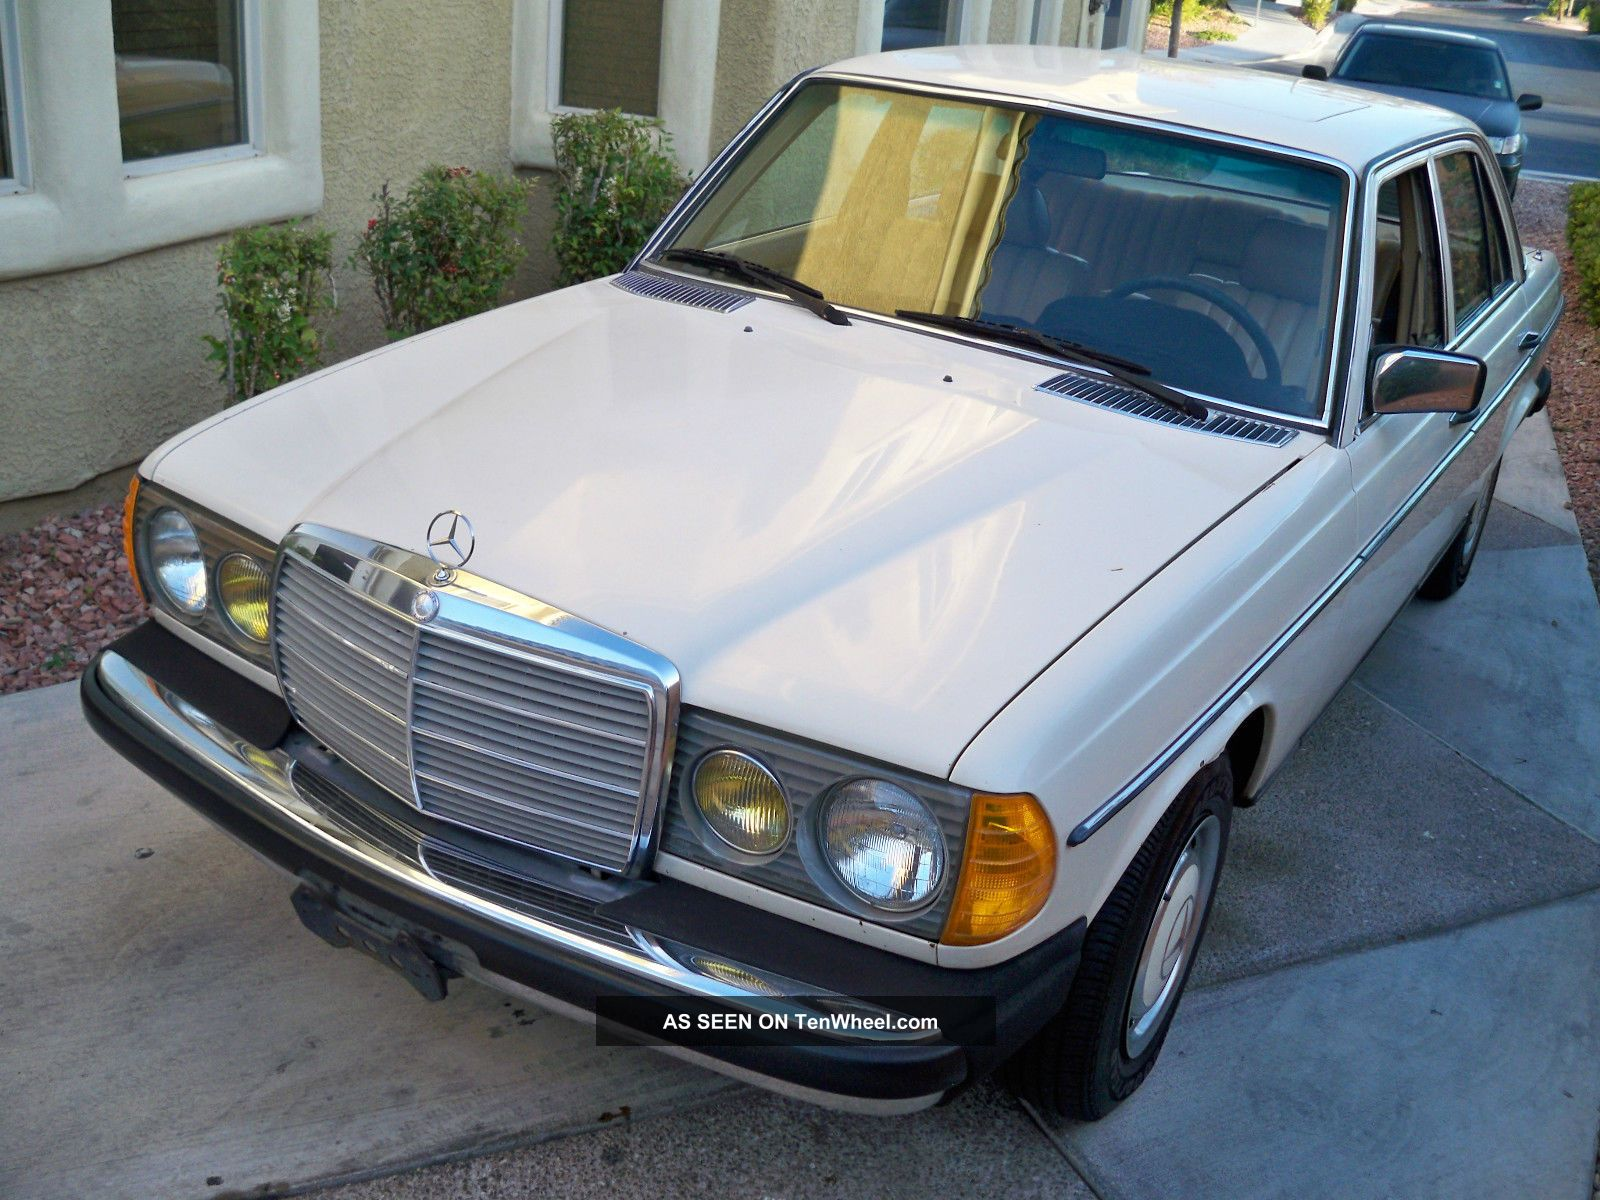 1981 Mercedes 300d Diesel / Biodiesel Svo Conversion Drive For Vegge Oil 300-Series photo